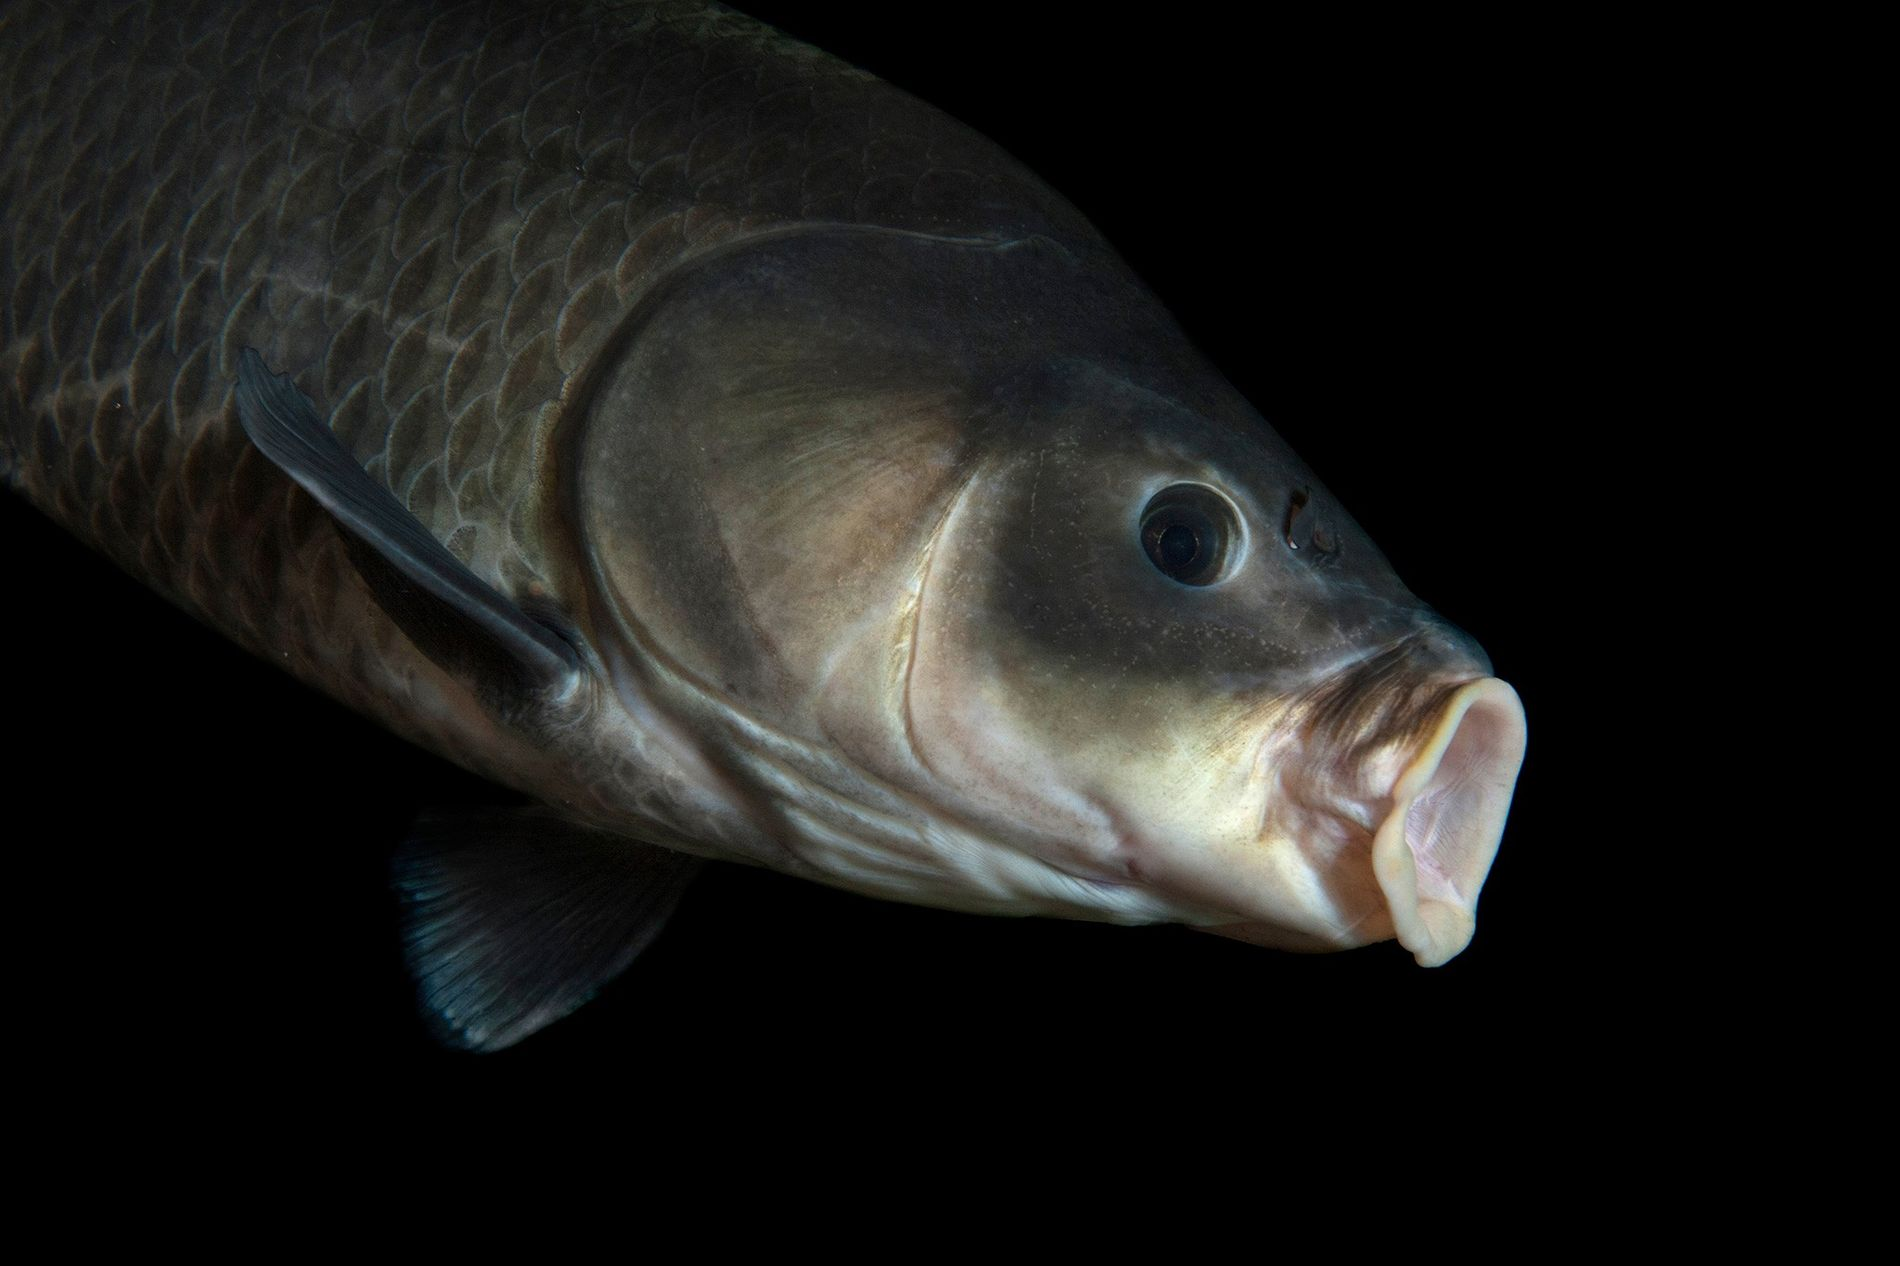 This bigmouth buffalo (Ictiobus cyprinellus) was photographed at Gavins Point National Fish Hatchery and Aquarium, in ...